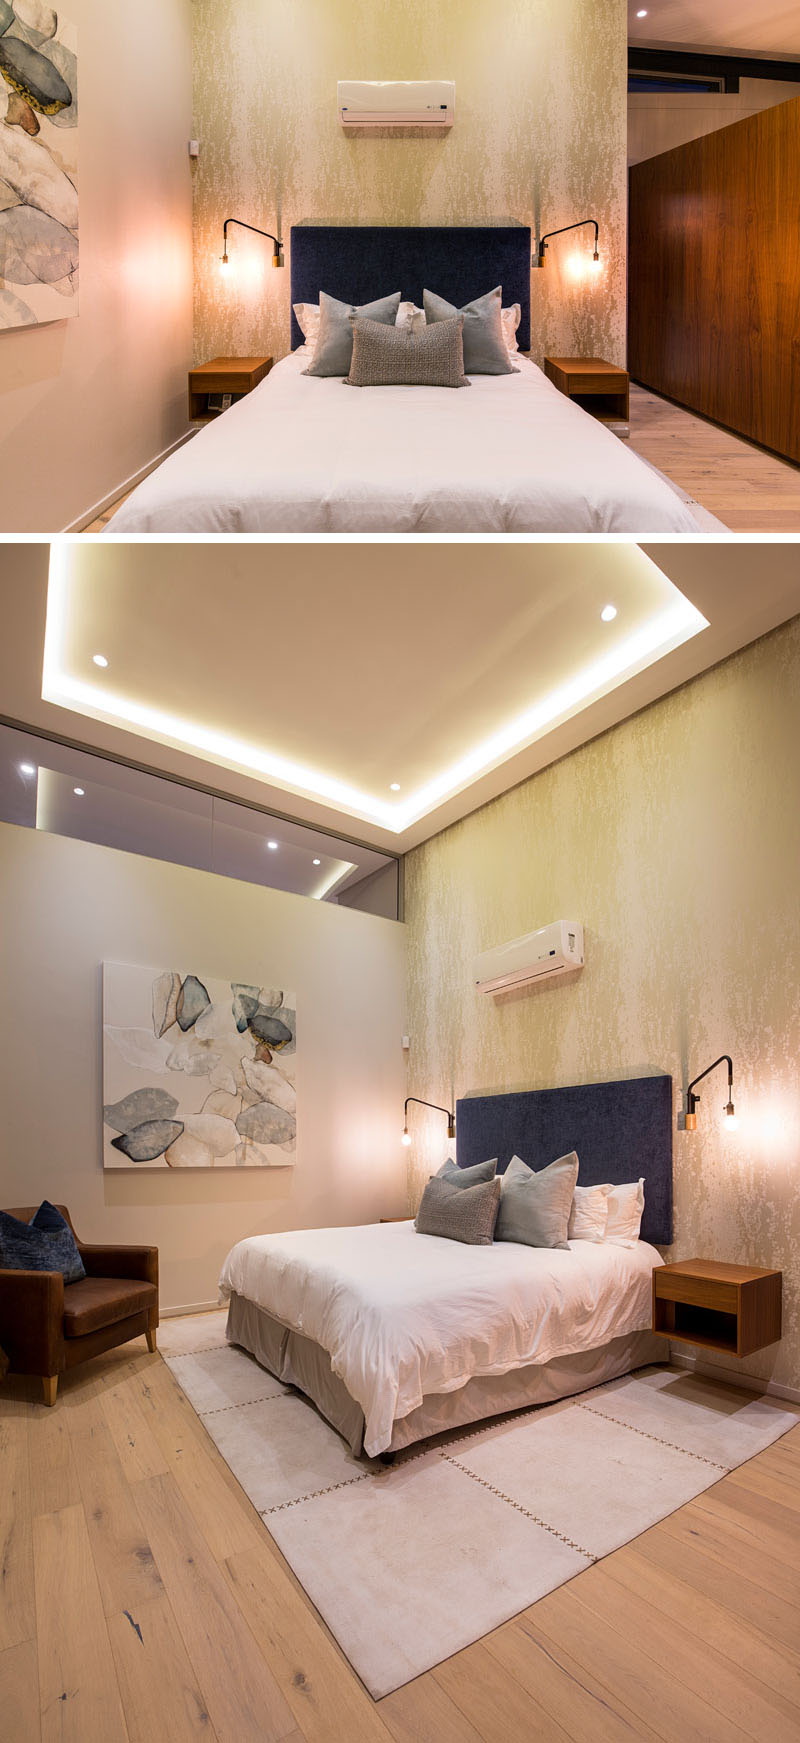 In this modern master bedroom, gold wall paper behind the blue upholstered headboard reflects light from the wall mounted lights on either side of the bed, and the hidden lighting in the recessed ceiling.